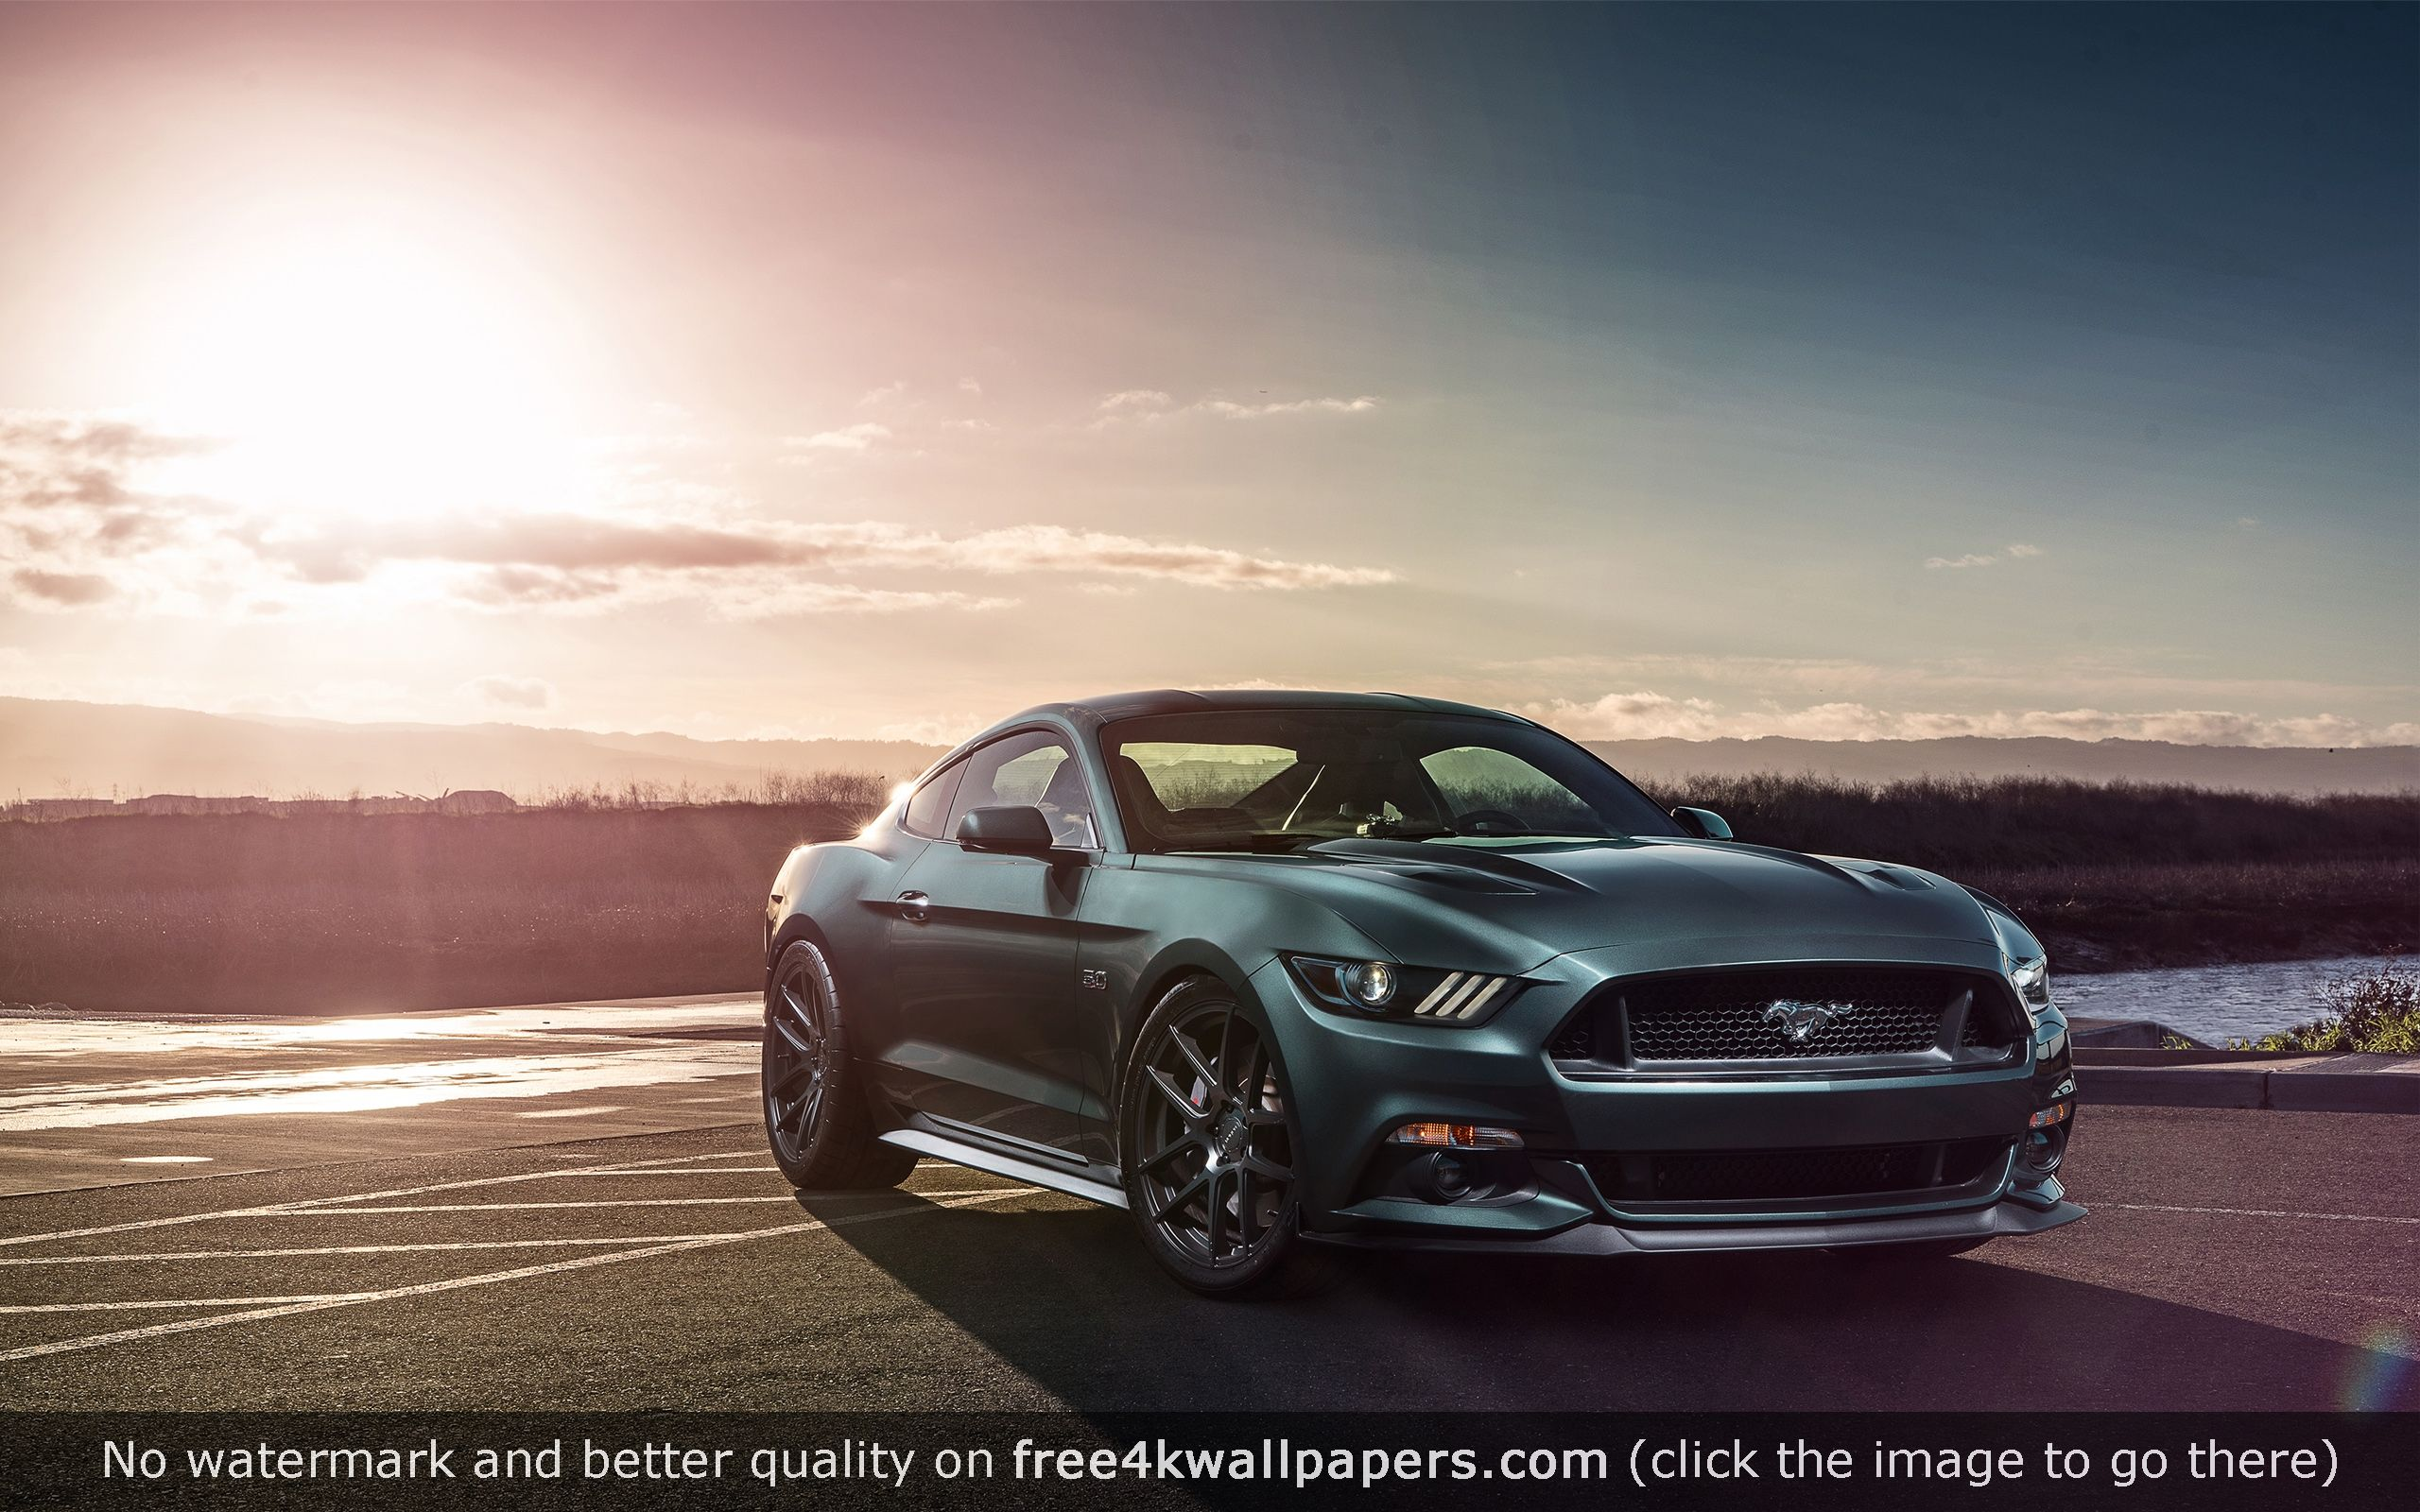 Download 1920x1080 mustang shelby, mustang, car, muscle car, blue, road wallpaper, background full hd, hdtv, fhd, 1080p Mustang Car Wallpaper 4k